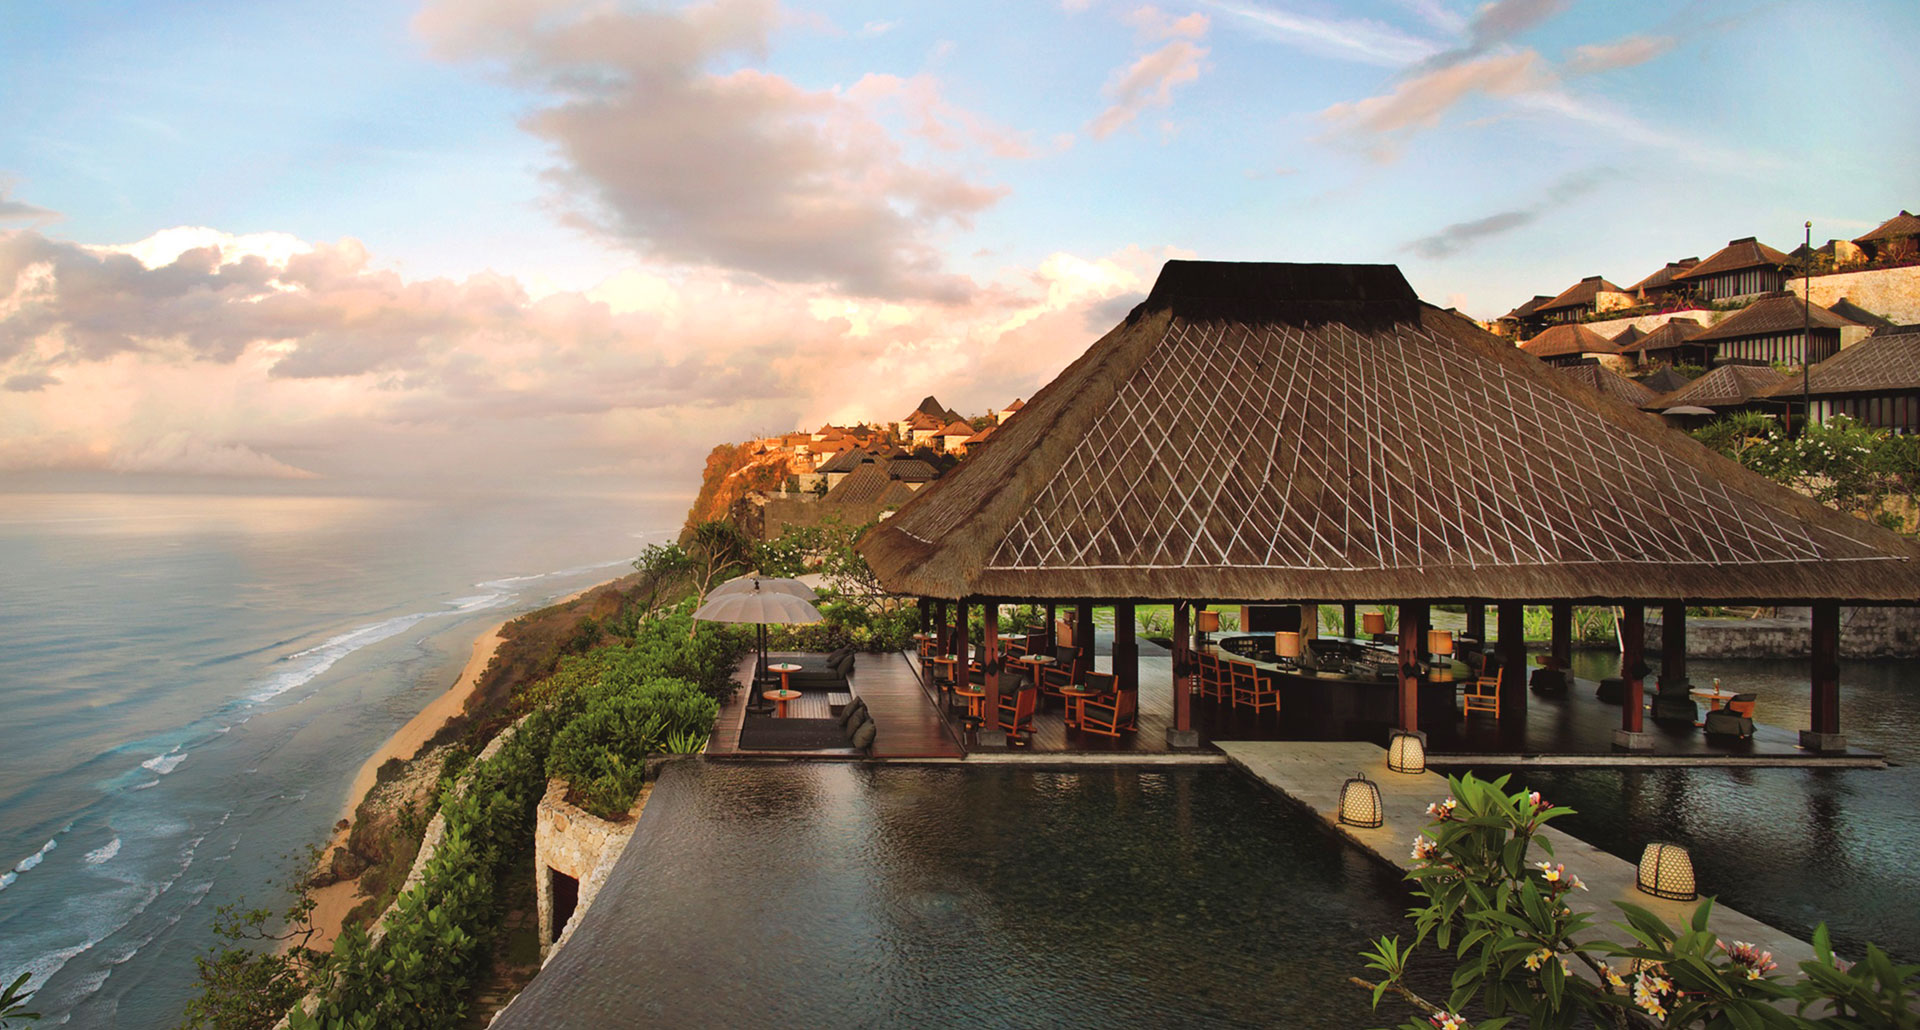 Bulgari - boutique hotel in Bali